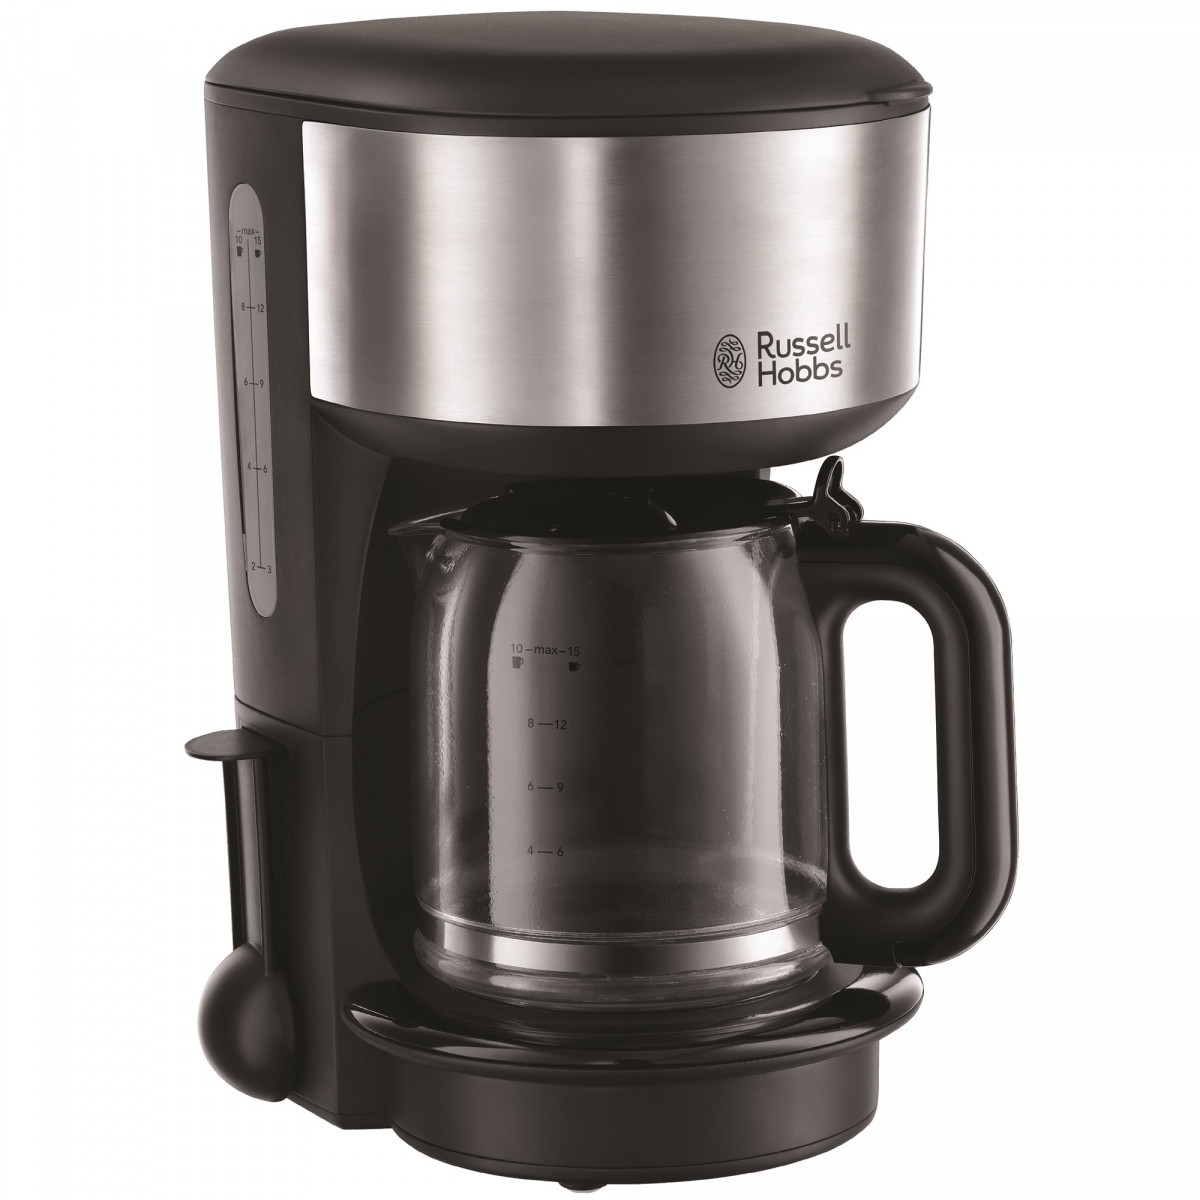 Russell Hobbs 2013*-56 [Oxford]